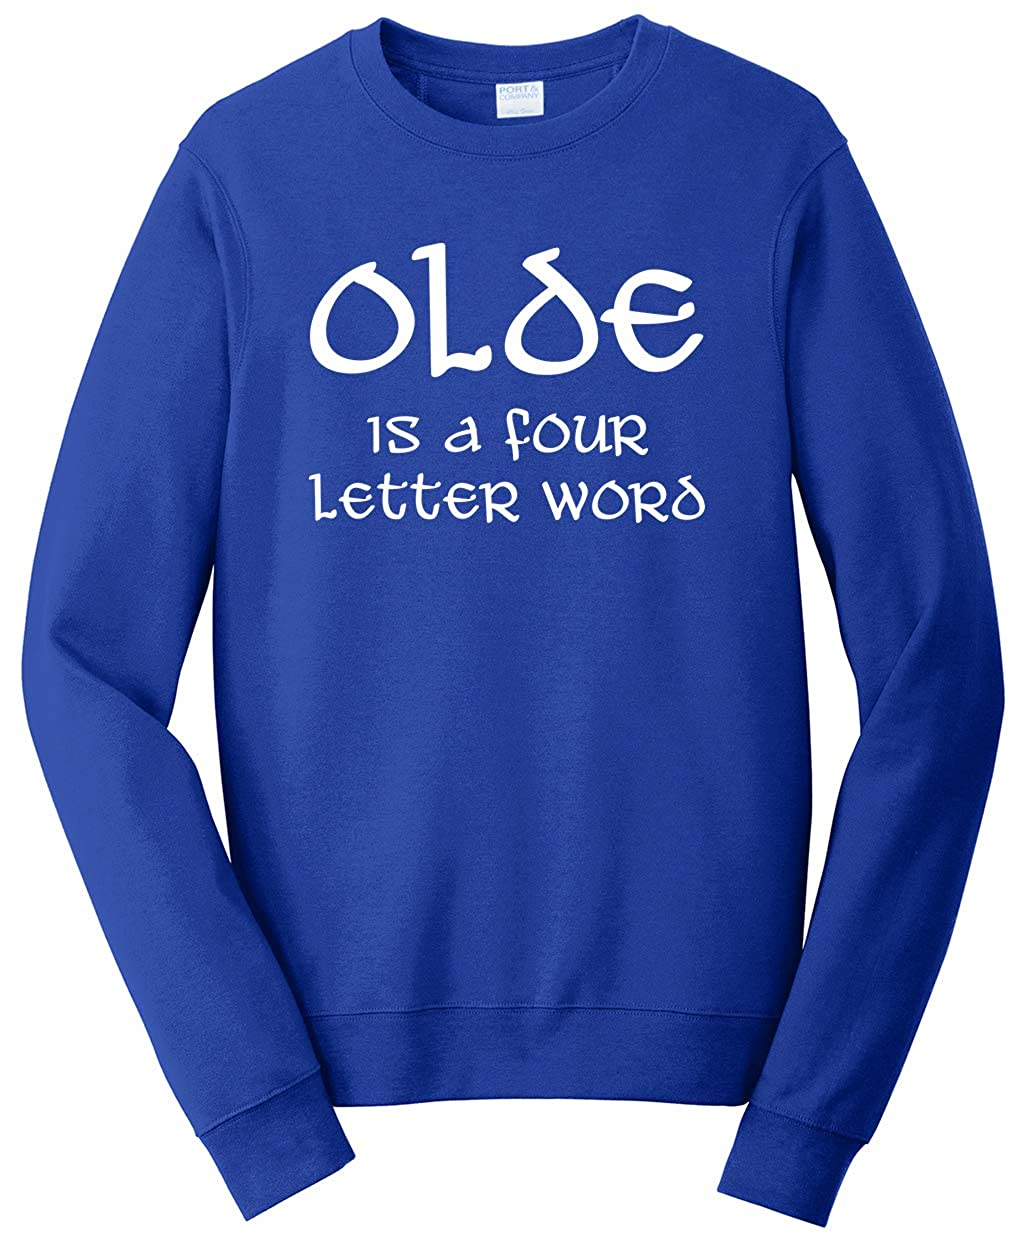 Tenacitee Unisex Olde is a Four Letter Word Sweatshirt